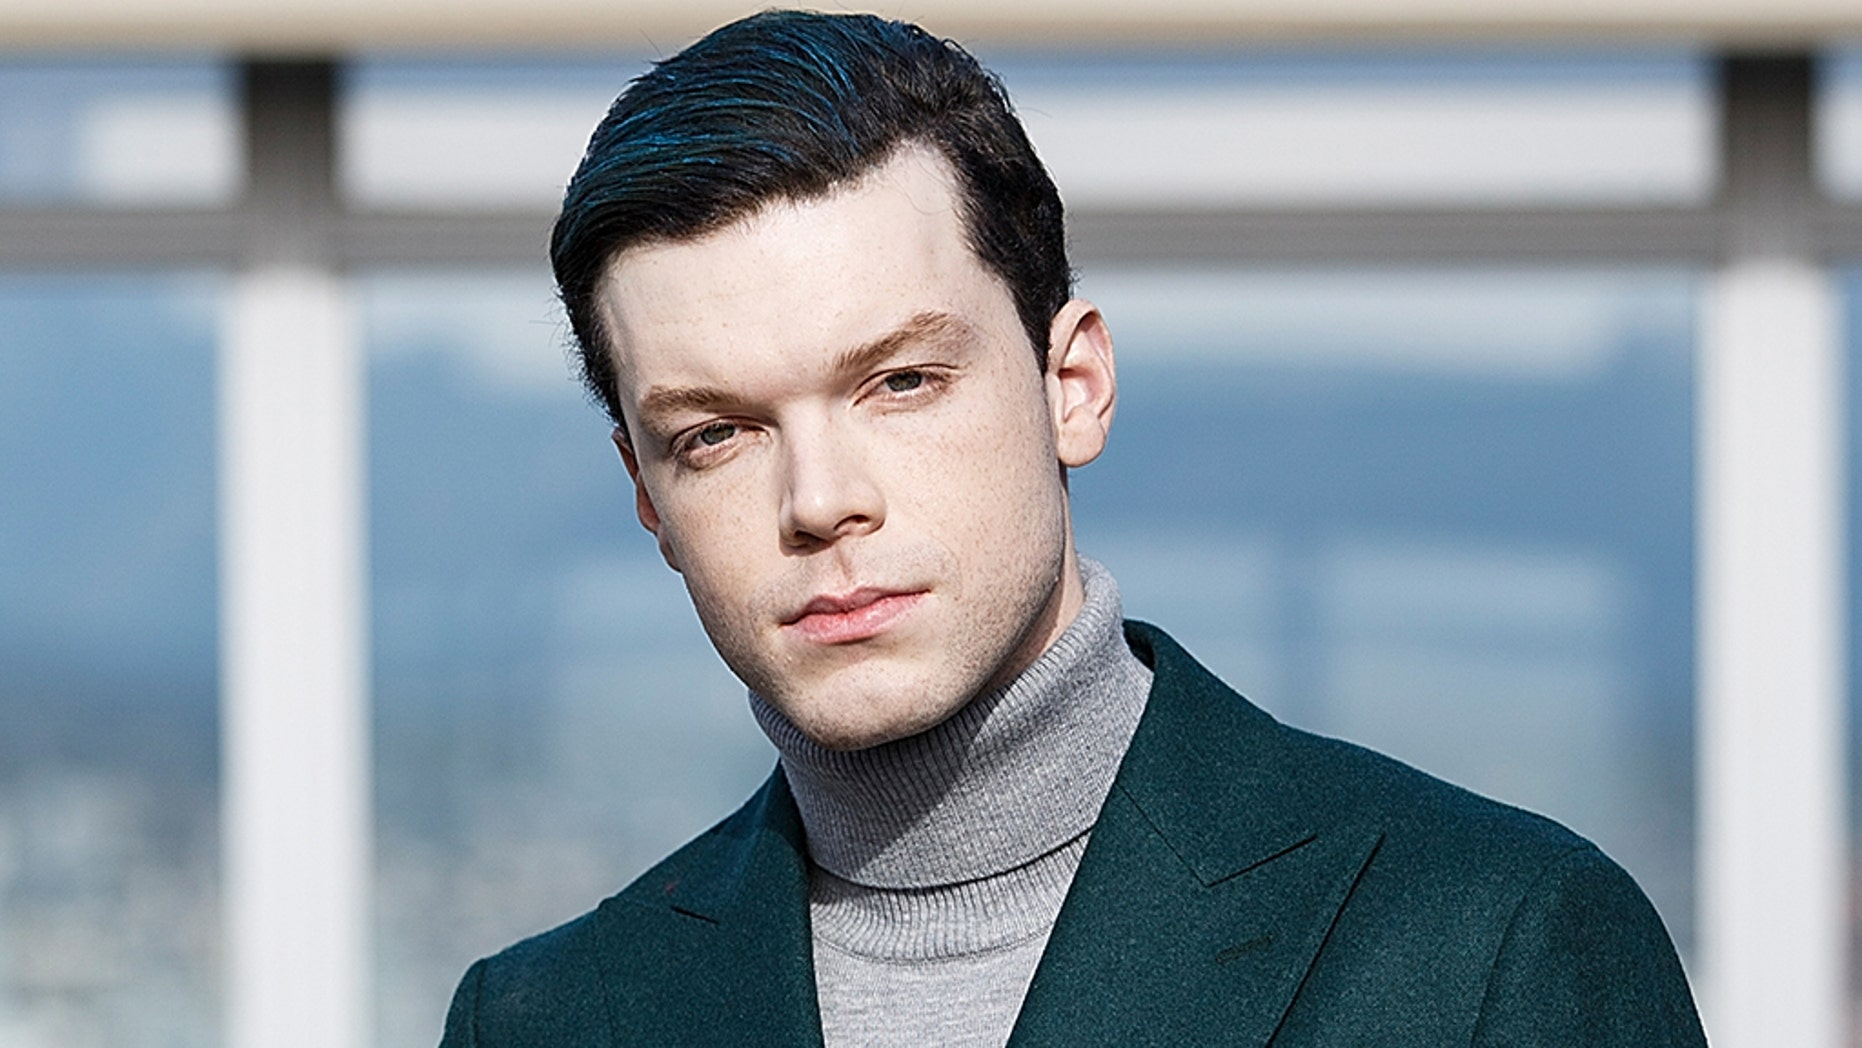 The star & # 39; shameless & # 39; Cameron Monaghan announced Monday that he will leave the Showtime series.